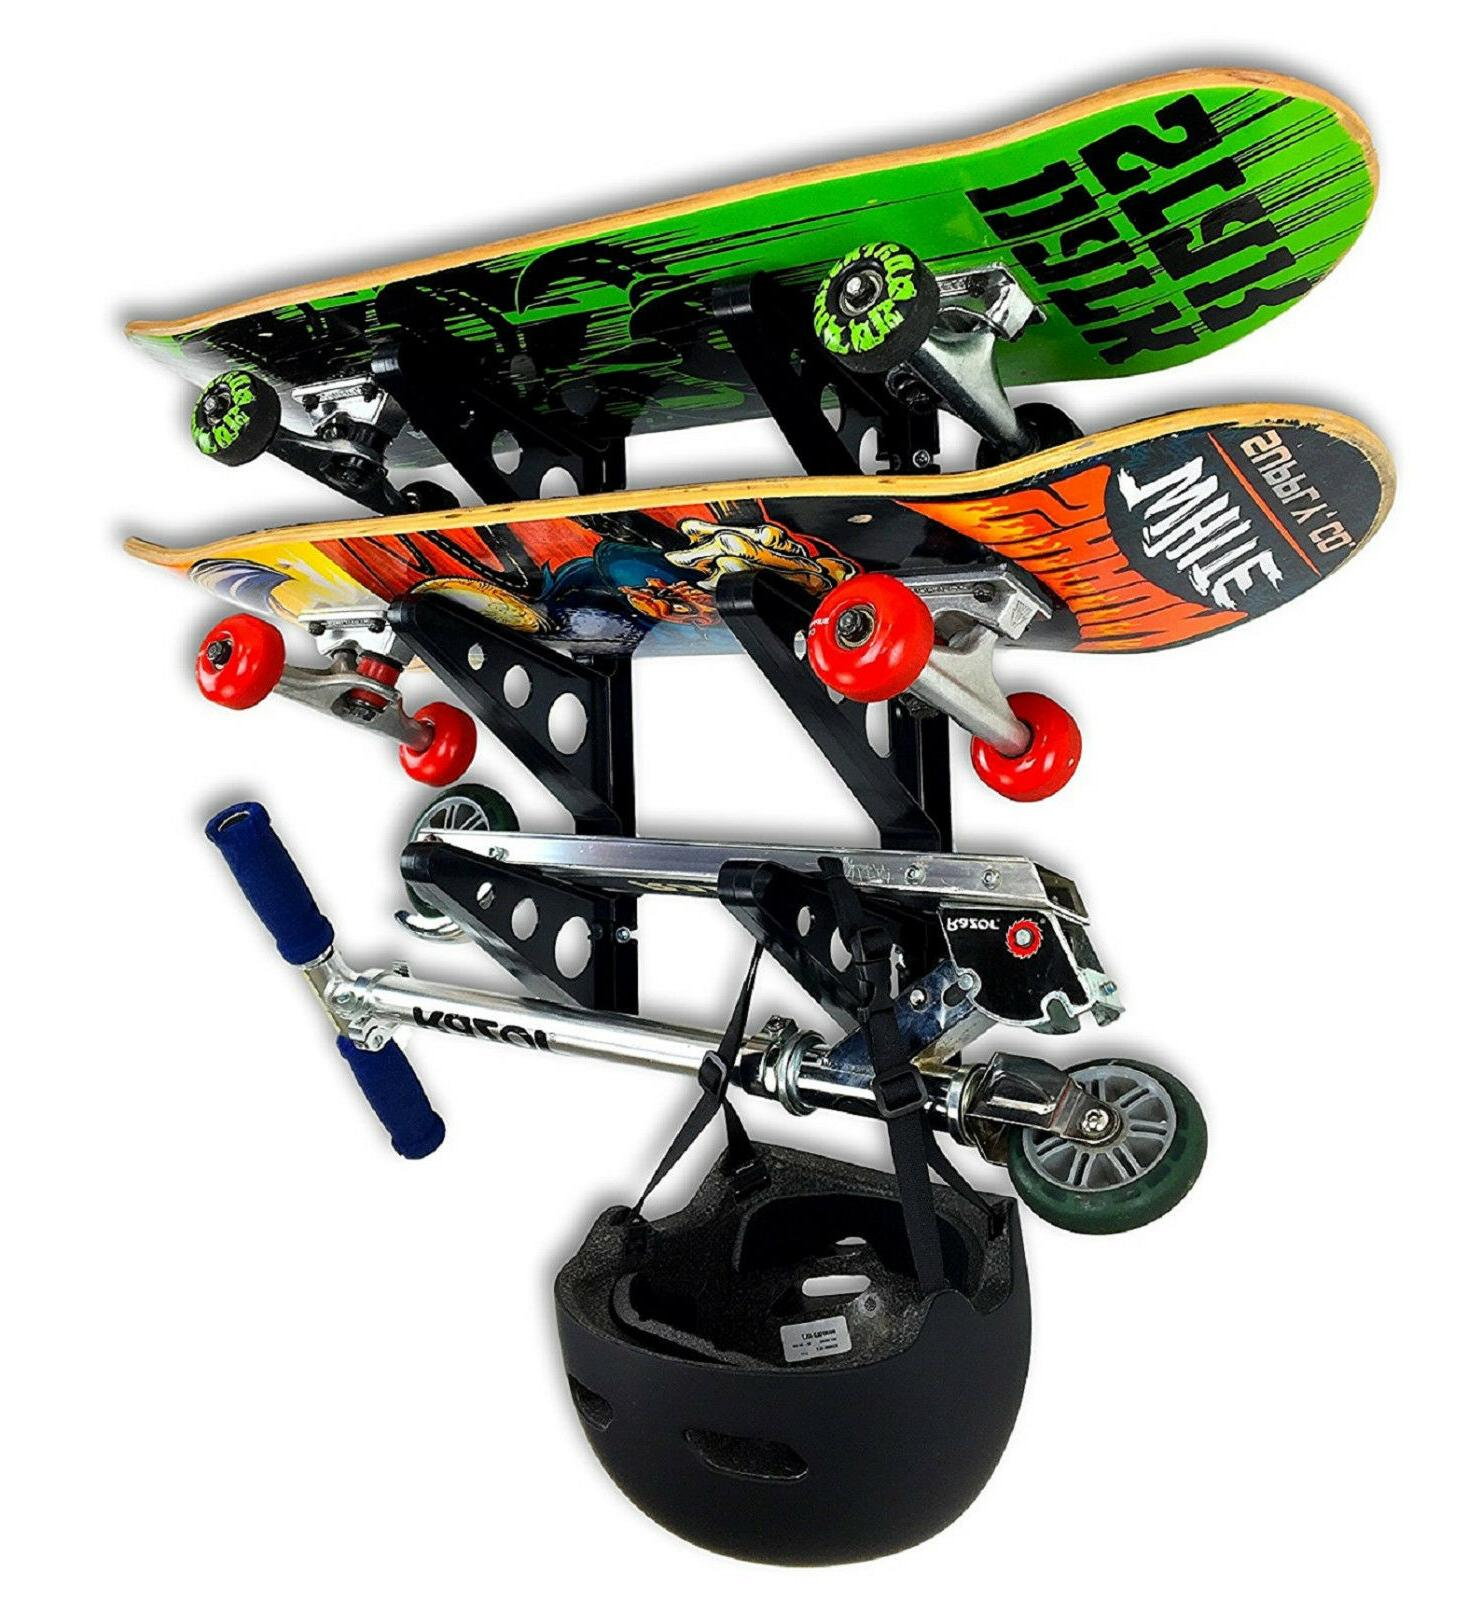 skateboard rack sports outdoors recreation scooter exercise